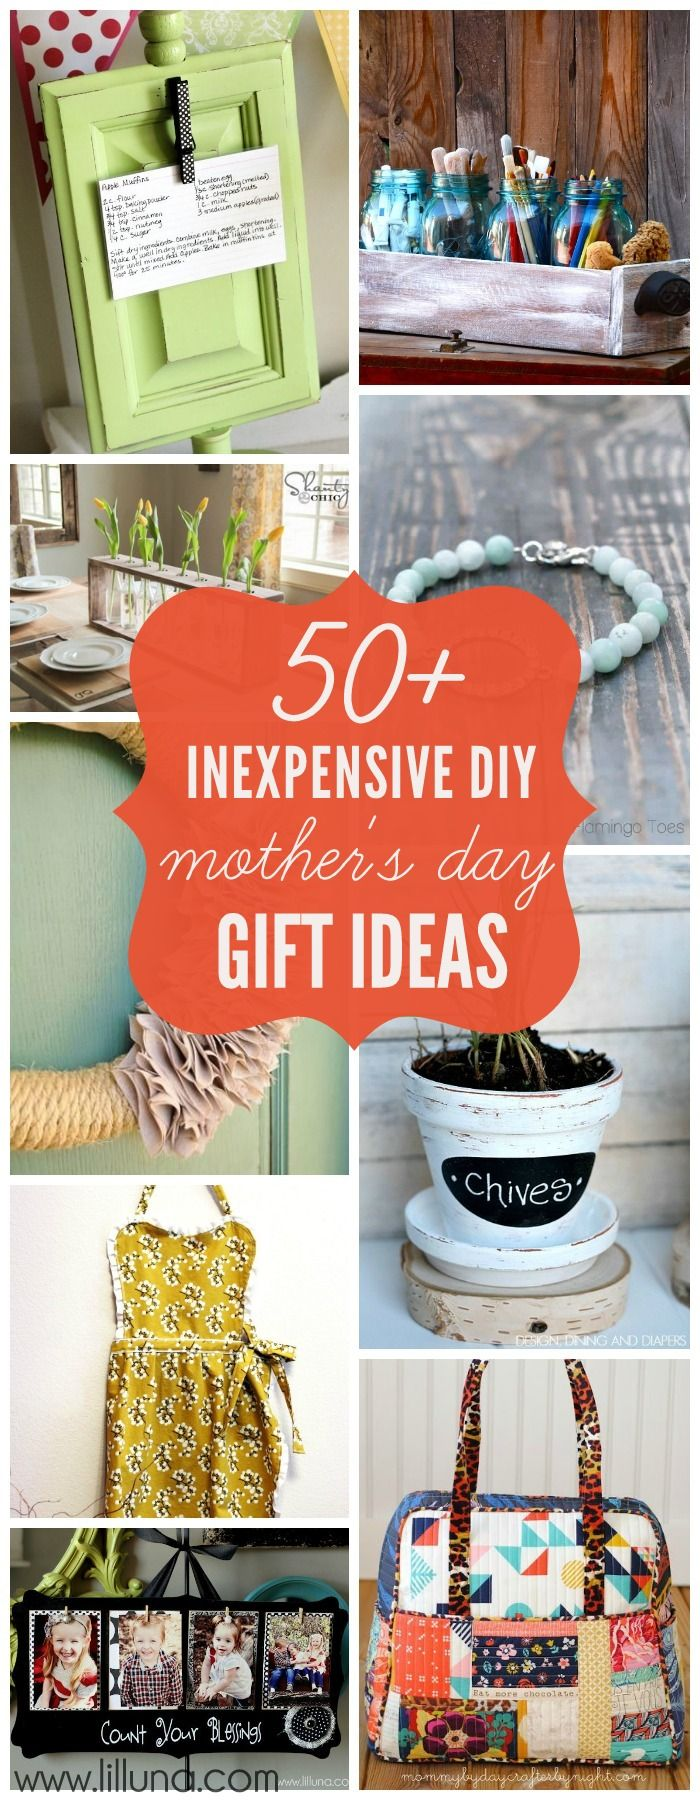 best images about mother s day fingerprints inexpensive diy gift ideas perfect for mother s day a must see collection scoured blog land in search of my favorite inexpensive diy mother s day